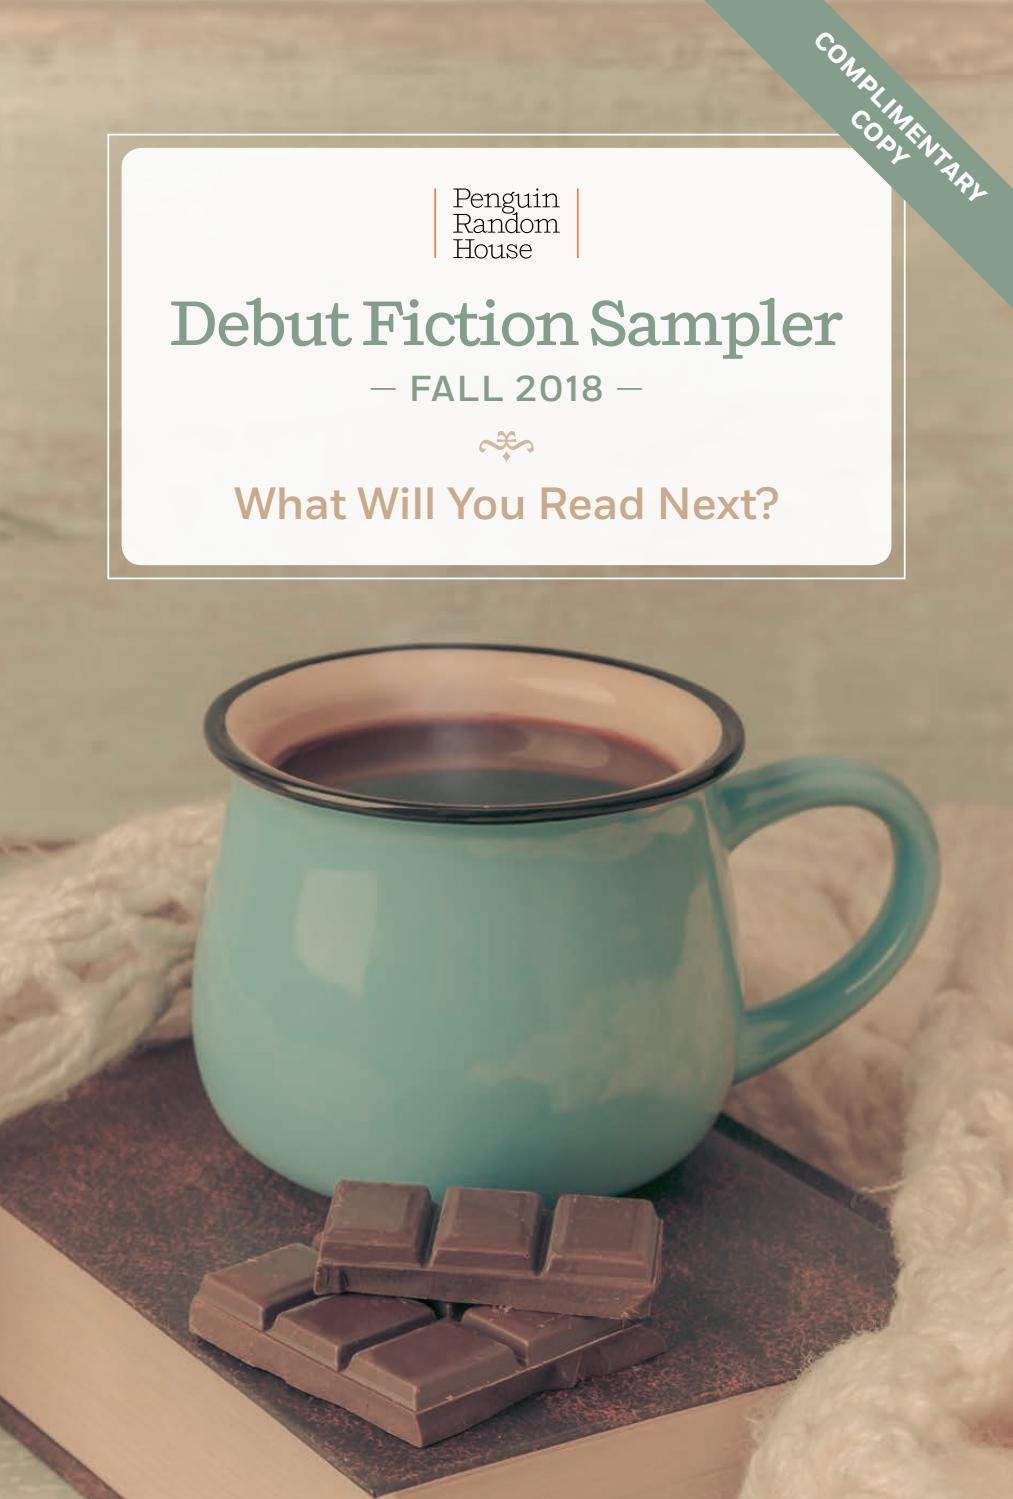 d004ab5143b5a Debut Fiction Sampler  Fall 2018 by PRH Library - issuu